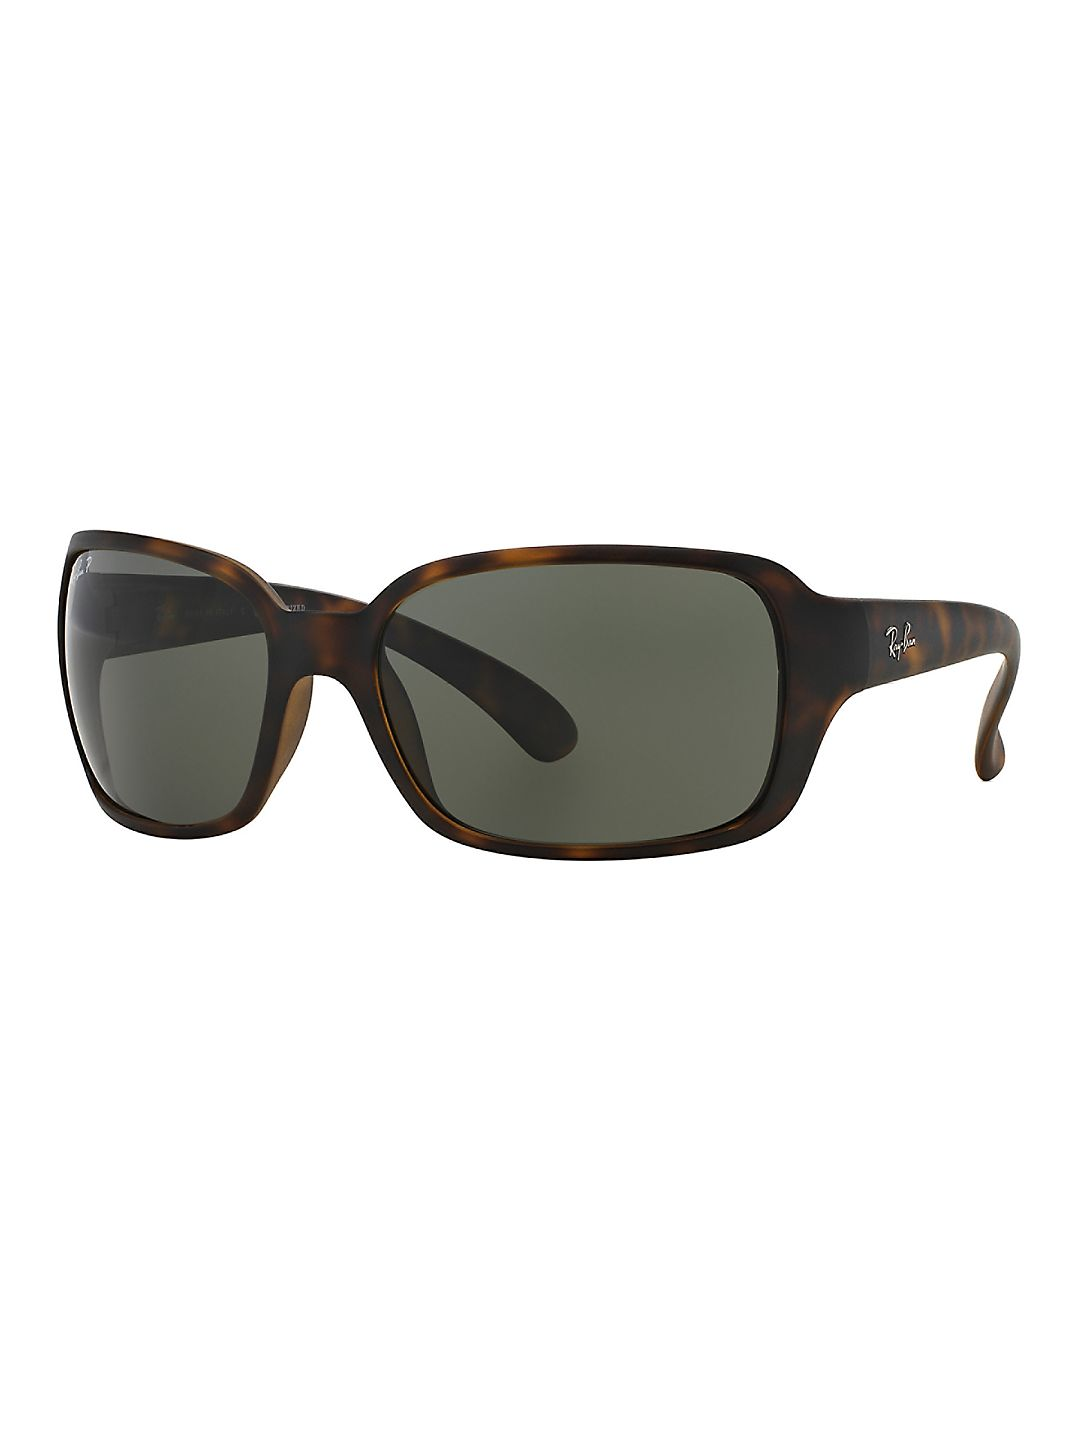 Ray-Ban Women's RB4068 Square Wrap Sunglasses, 60mm